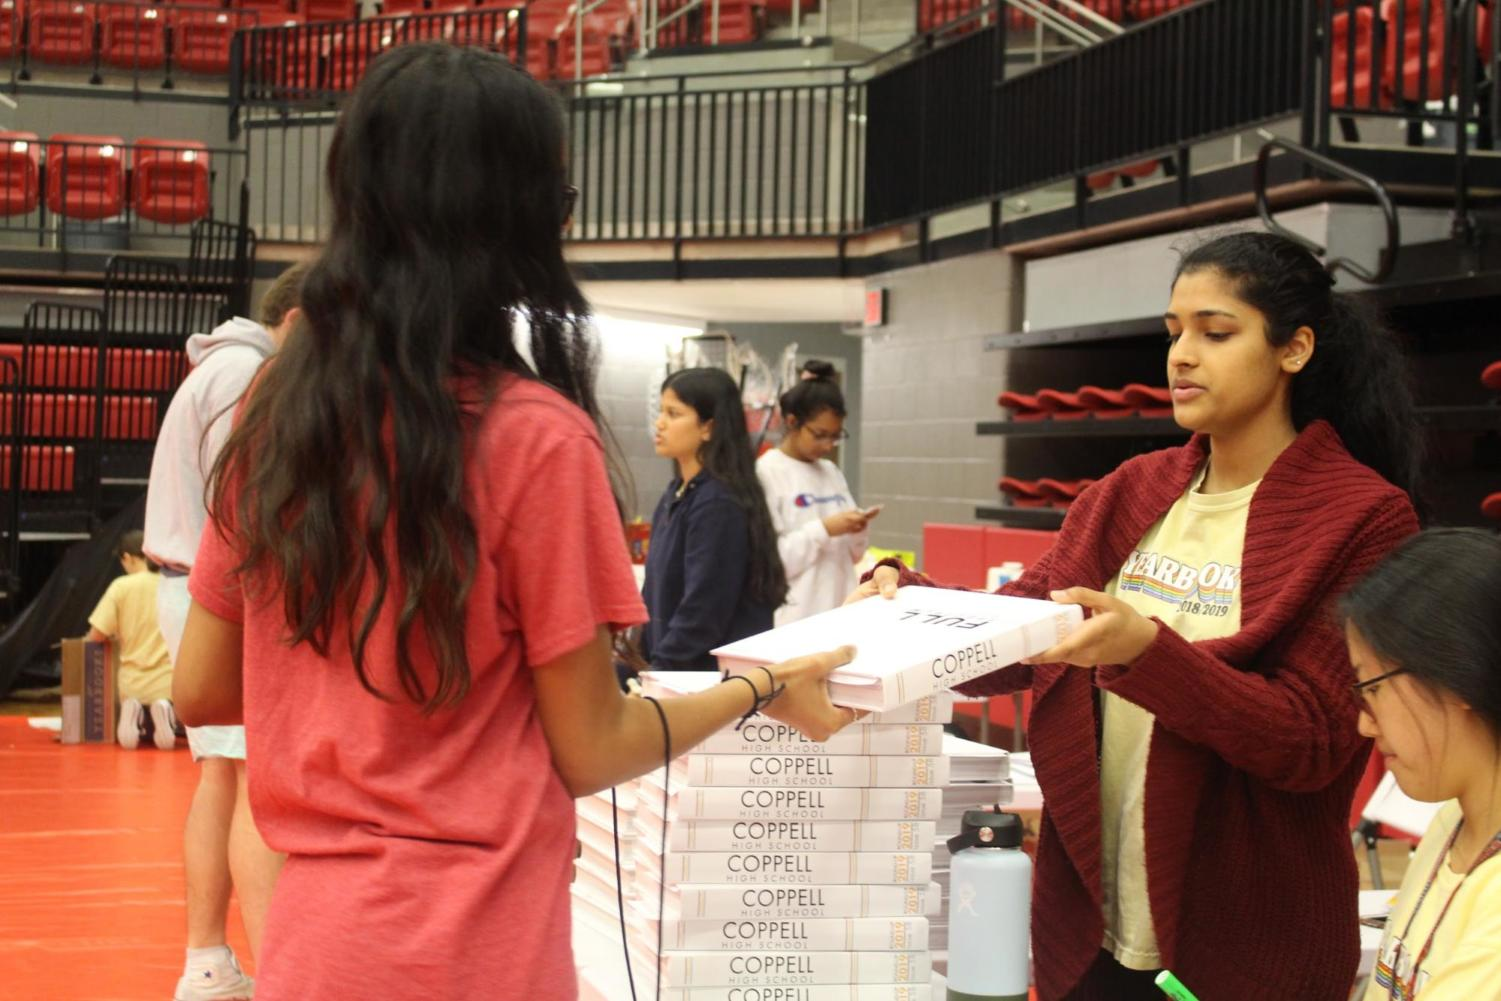 Coppell High School junior Anais Hartley receives her Round-Up yearbook today during sixth period. The yearbook pick up will be held at the Arena all throughout the day at Coppell High School for CHS students. Photo by Laura Amador-Toro